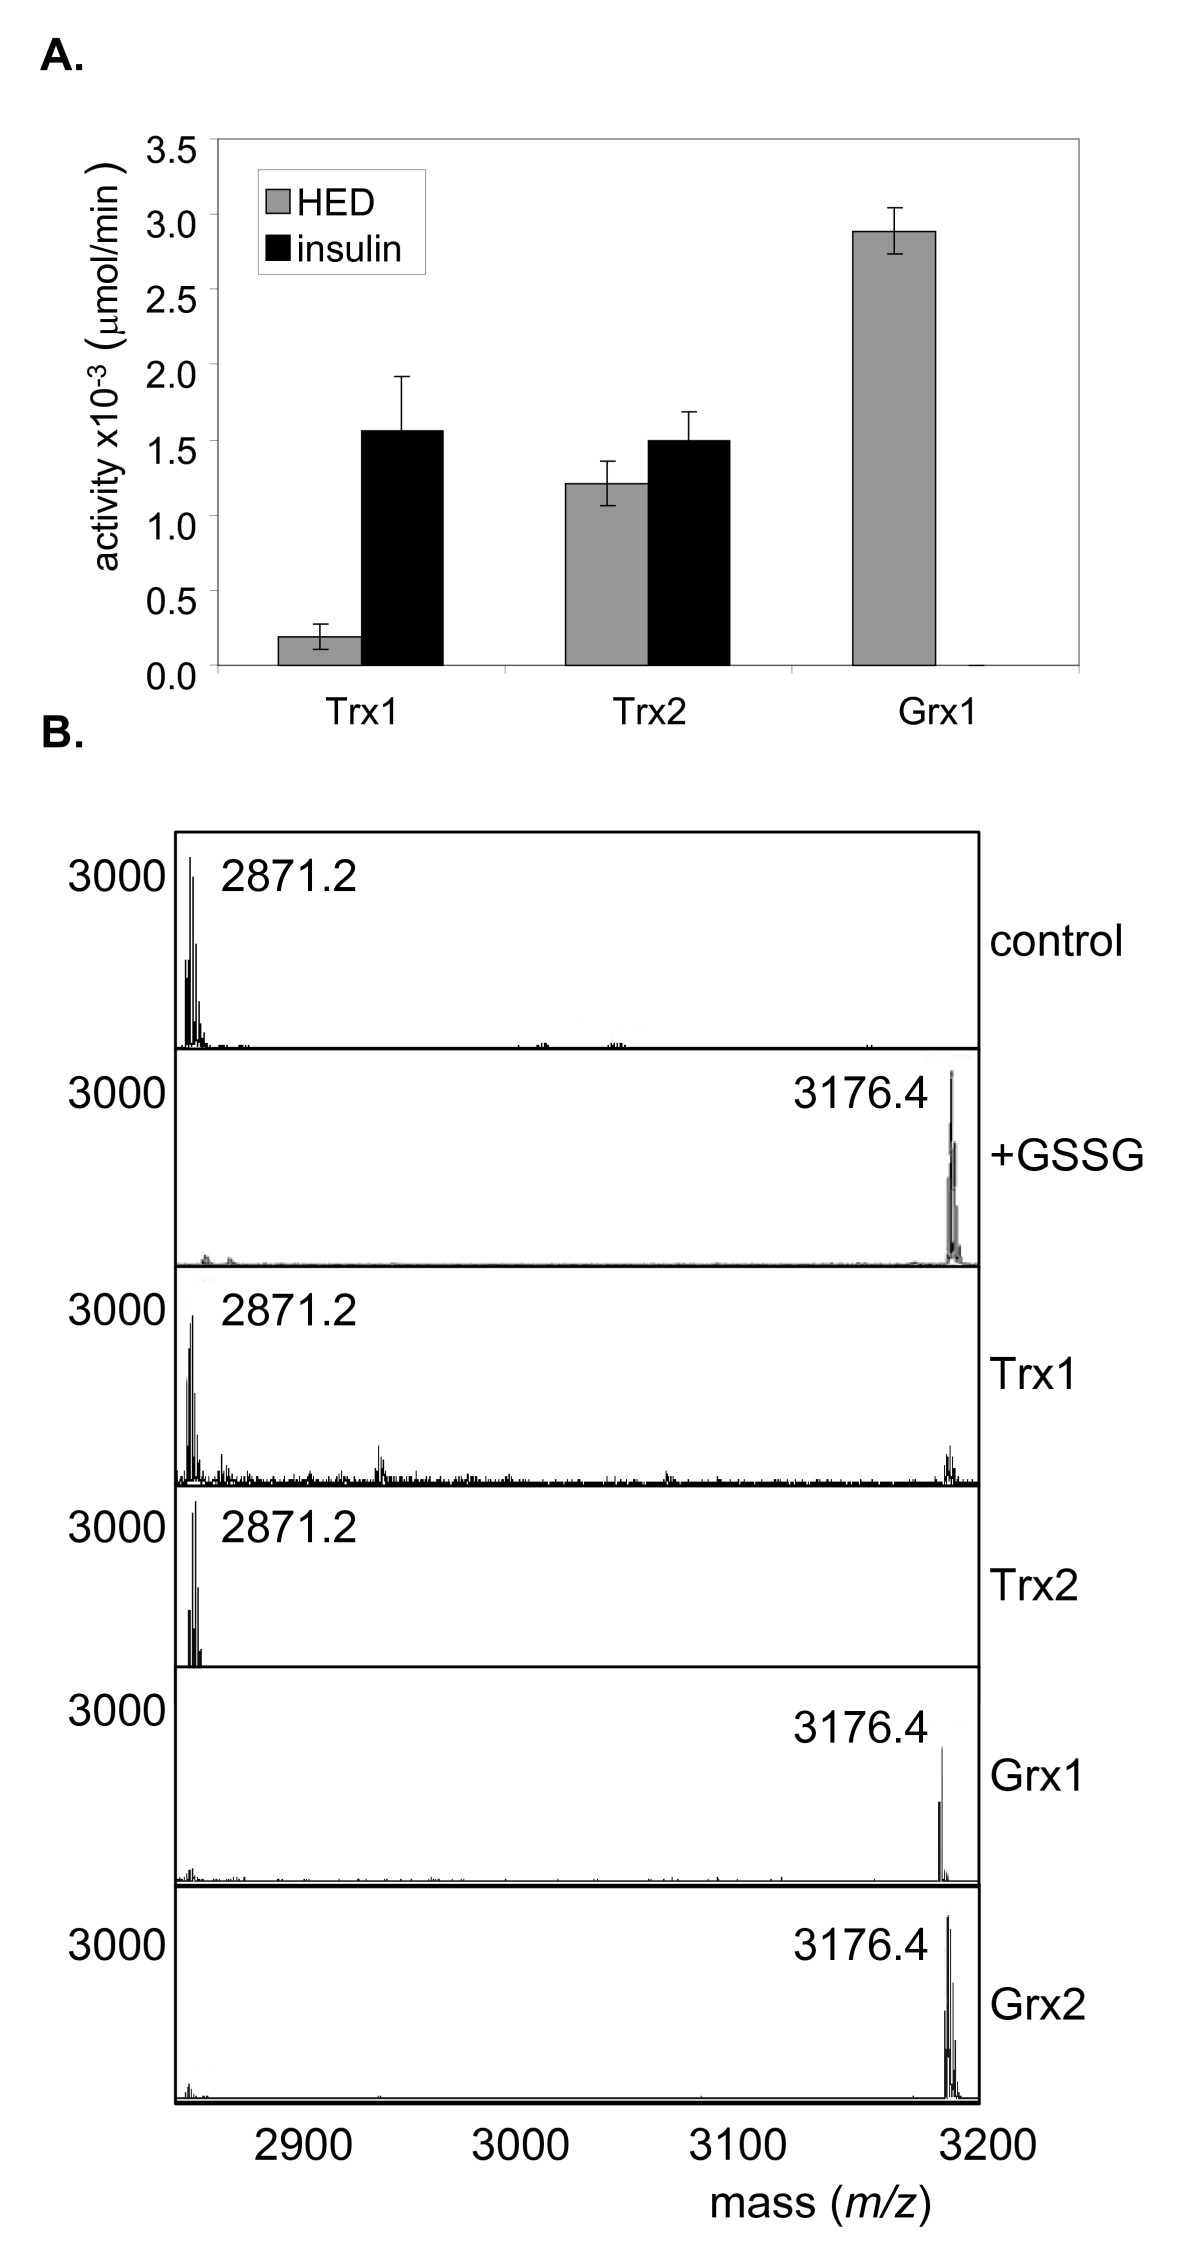 http://static-content.springer.com/image/art%3A10.1186%2F1471-2091-11-3/MediaObjects/12858_2009_Article_264_Fig6_HTML.jpg